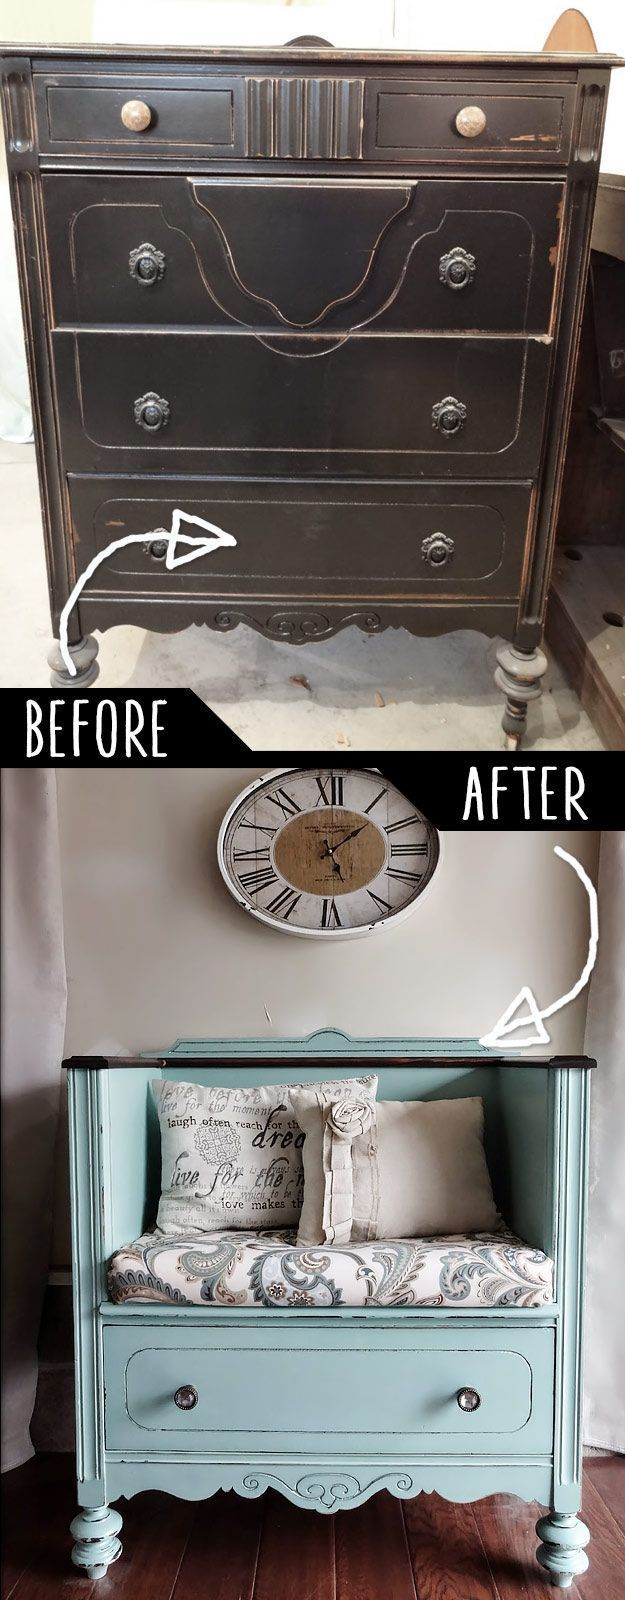 nice nice 39 Clever DIY Furniture Hacks - DIY Joy... by http://www.tophome-decorations.xyz/kitchen-furniture/nice-39-clever-diy-furniture-hacks-diy-joy/